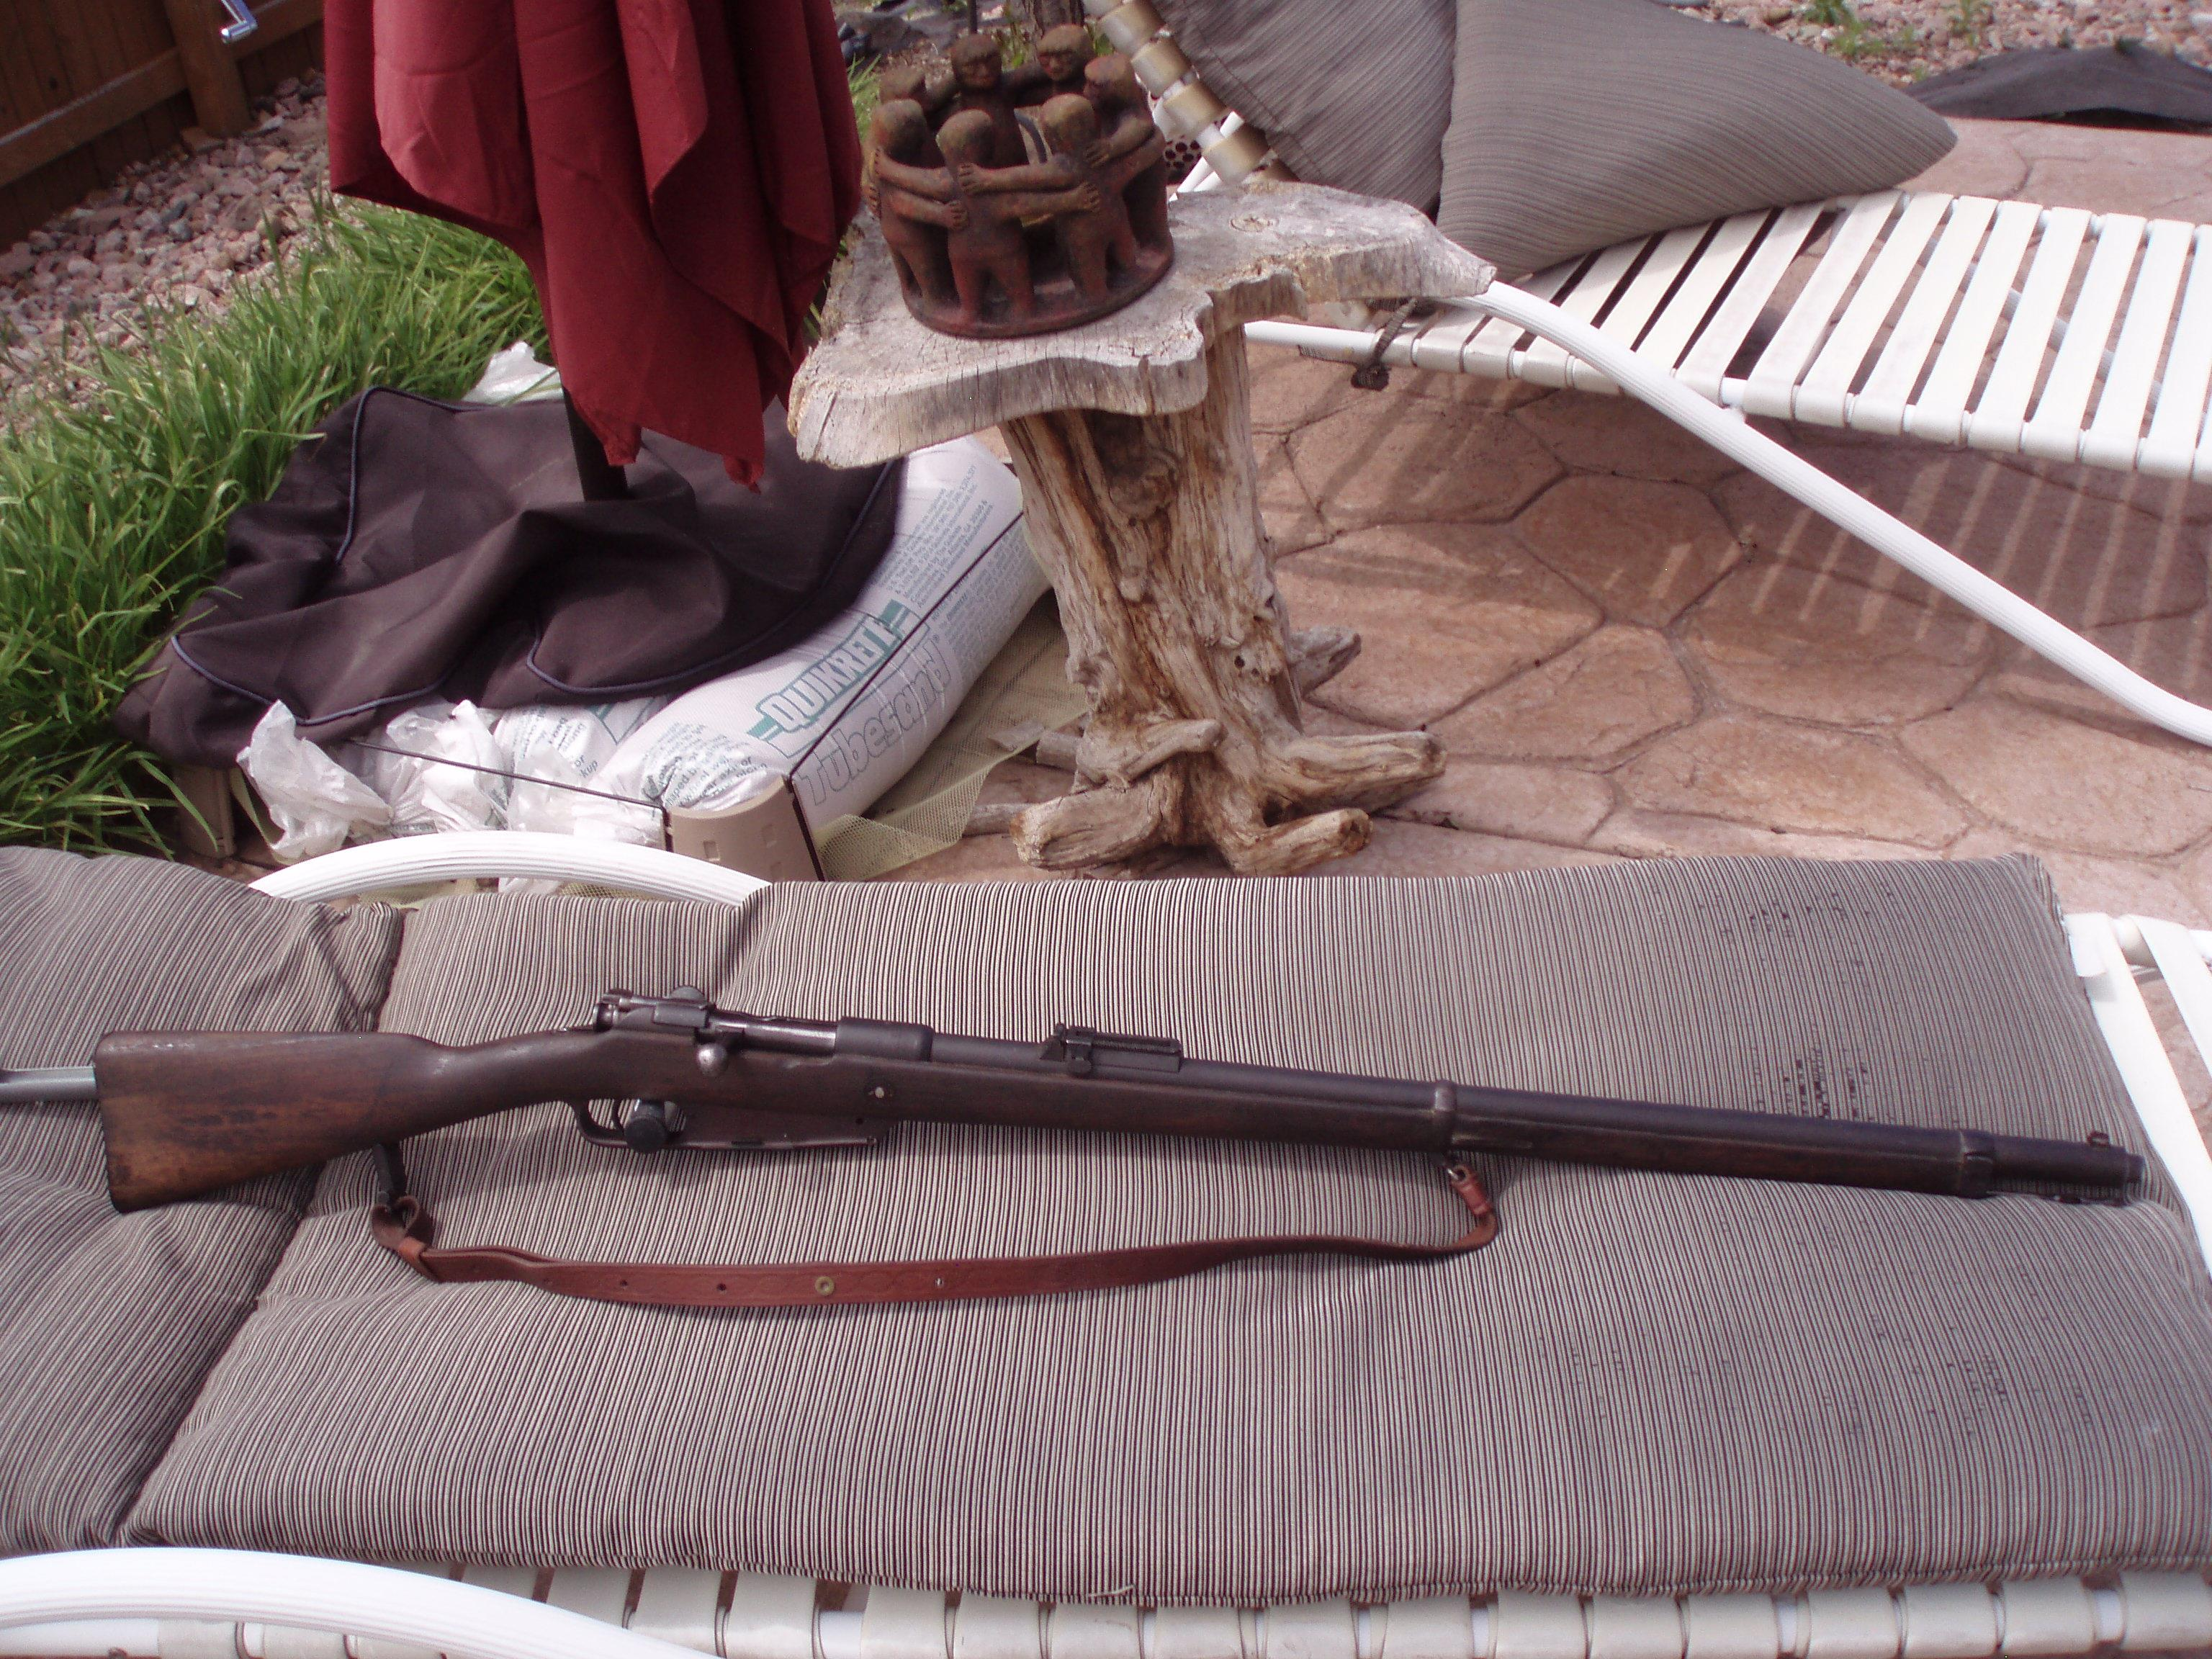 1890 Steyr GEW 88 - Price Reduced!  Guns > Rifles > Military Misc. Rifles Non-US > Other